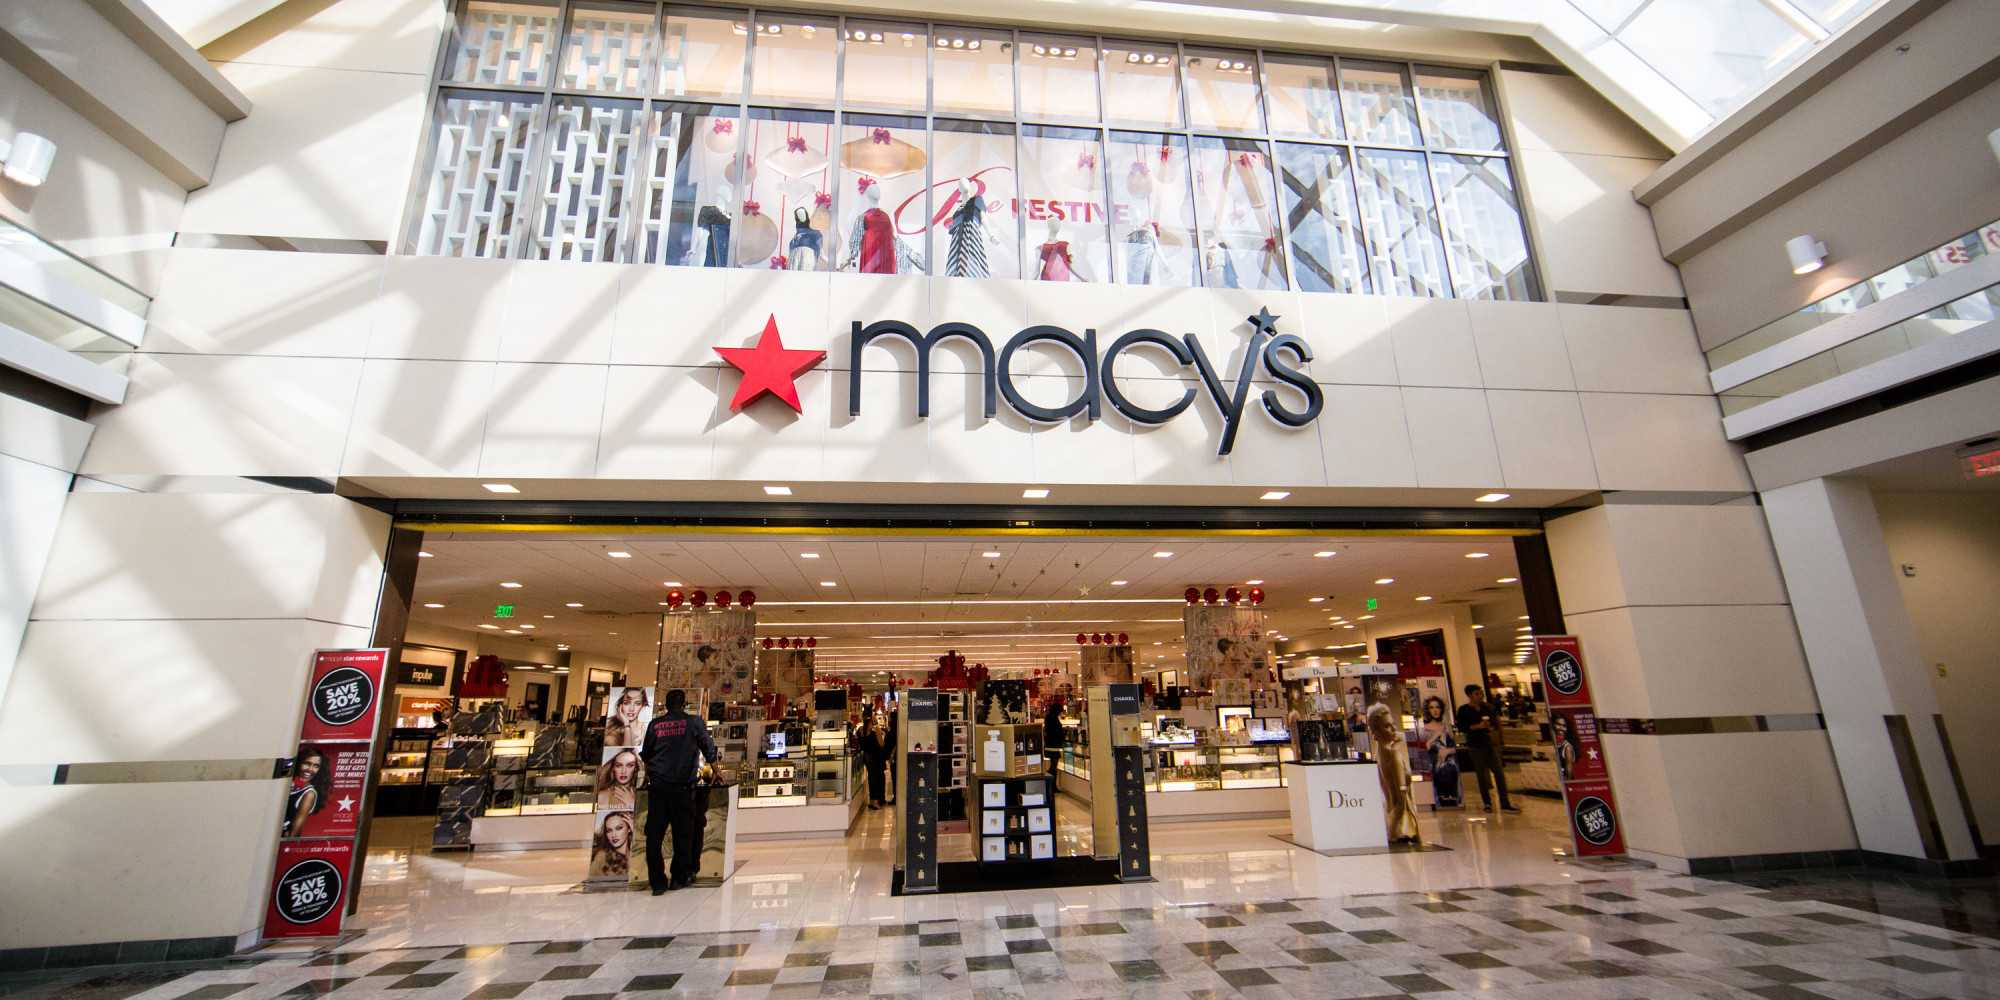 macy's near me, macys locations